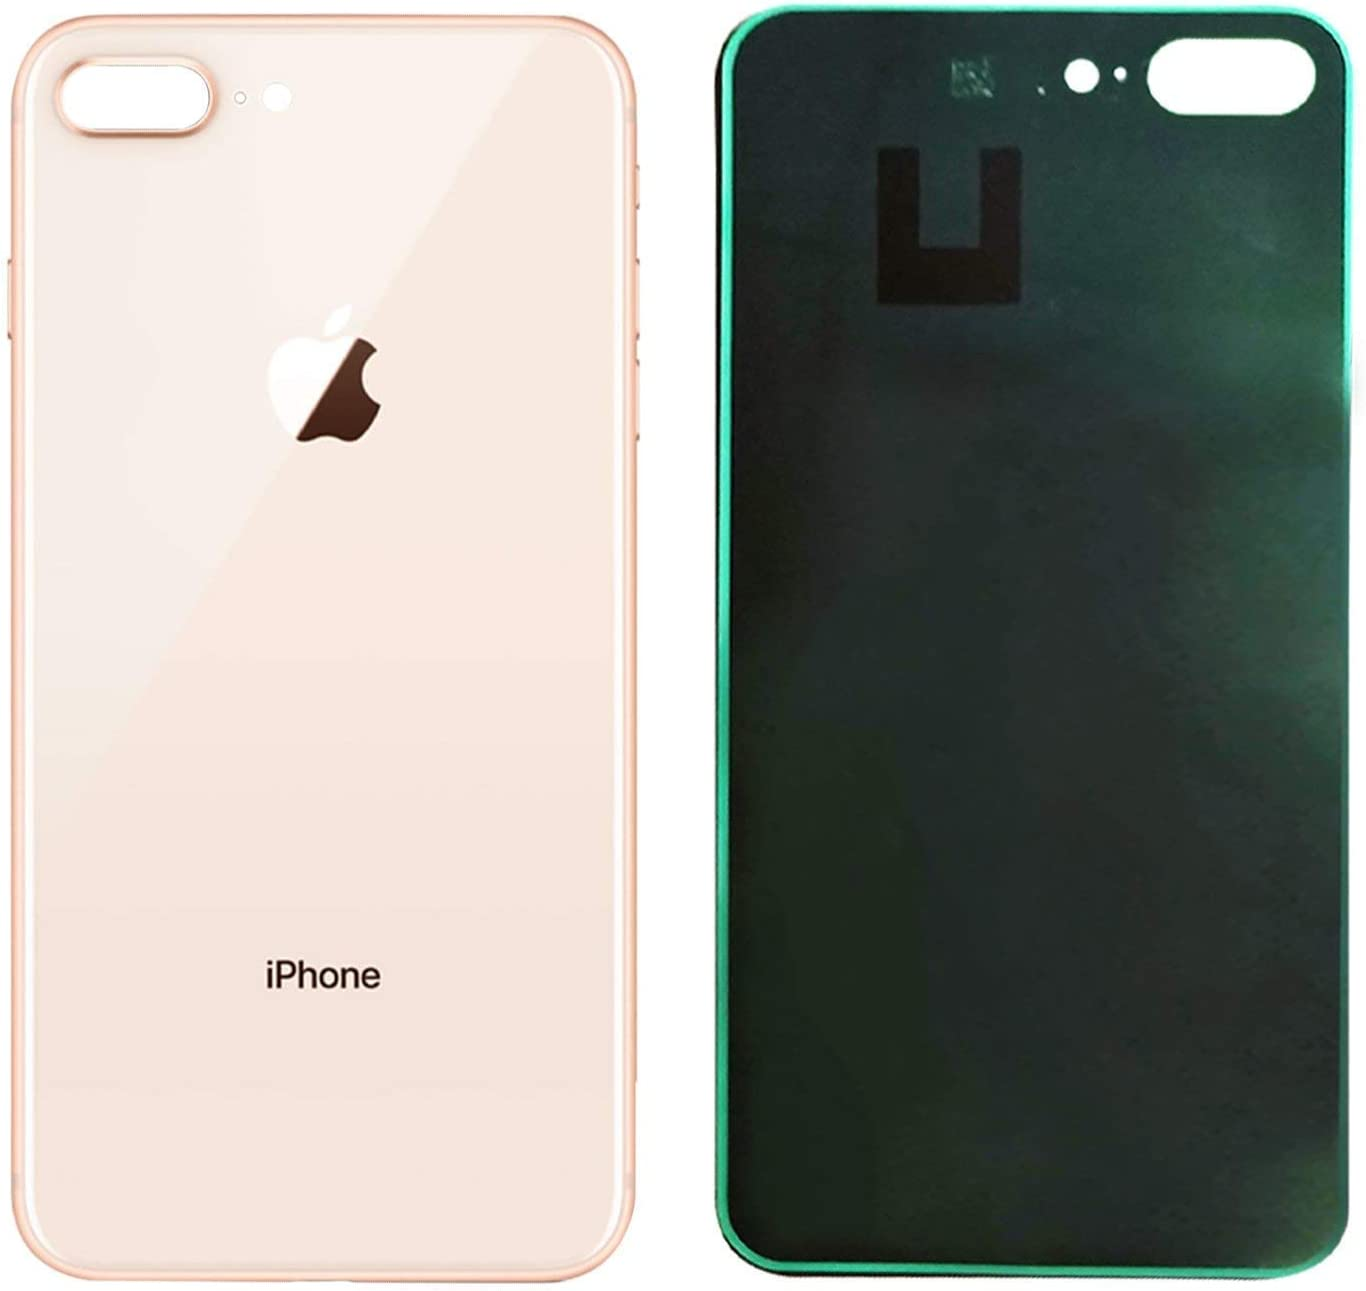 Apple iPhone 8 Replacement Back Glass Cover Back Battery Door w//Pre-Installed Adhesive,Best Version Apple iPhone 8 All Models OEM Replacement White